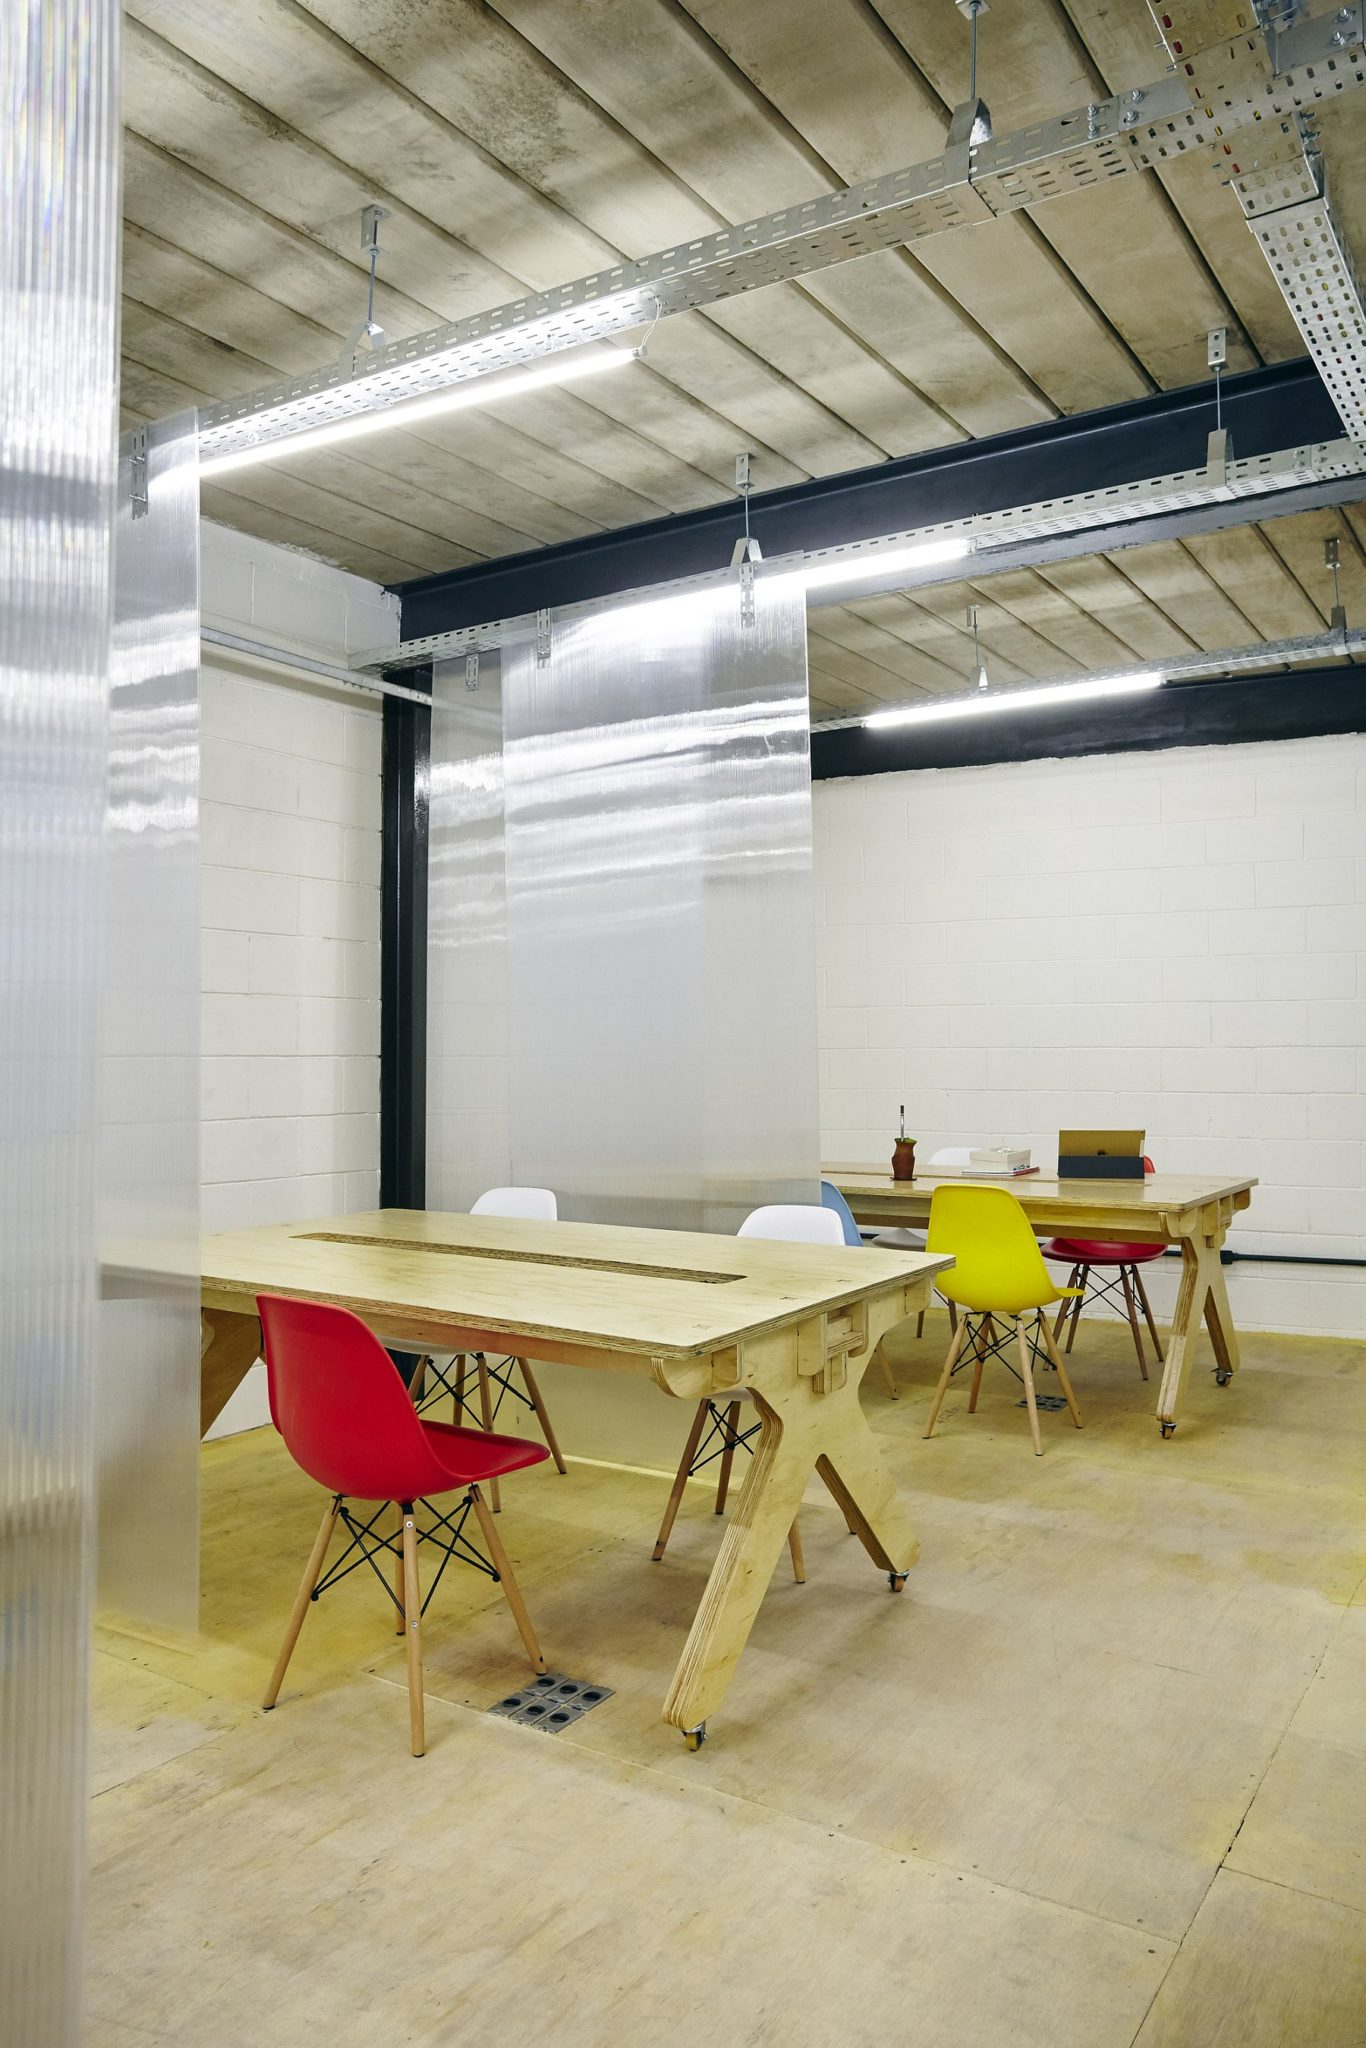 Meeting spaces and dining zones inside MALHA